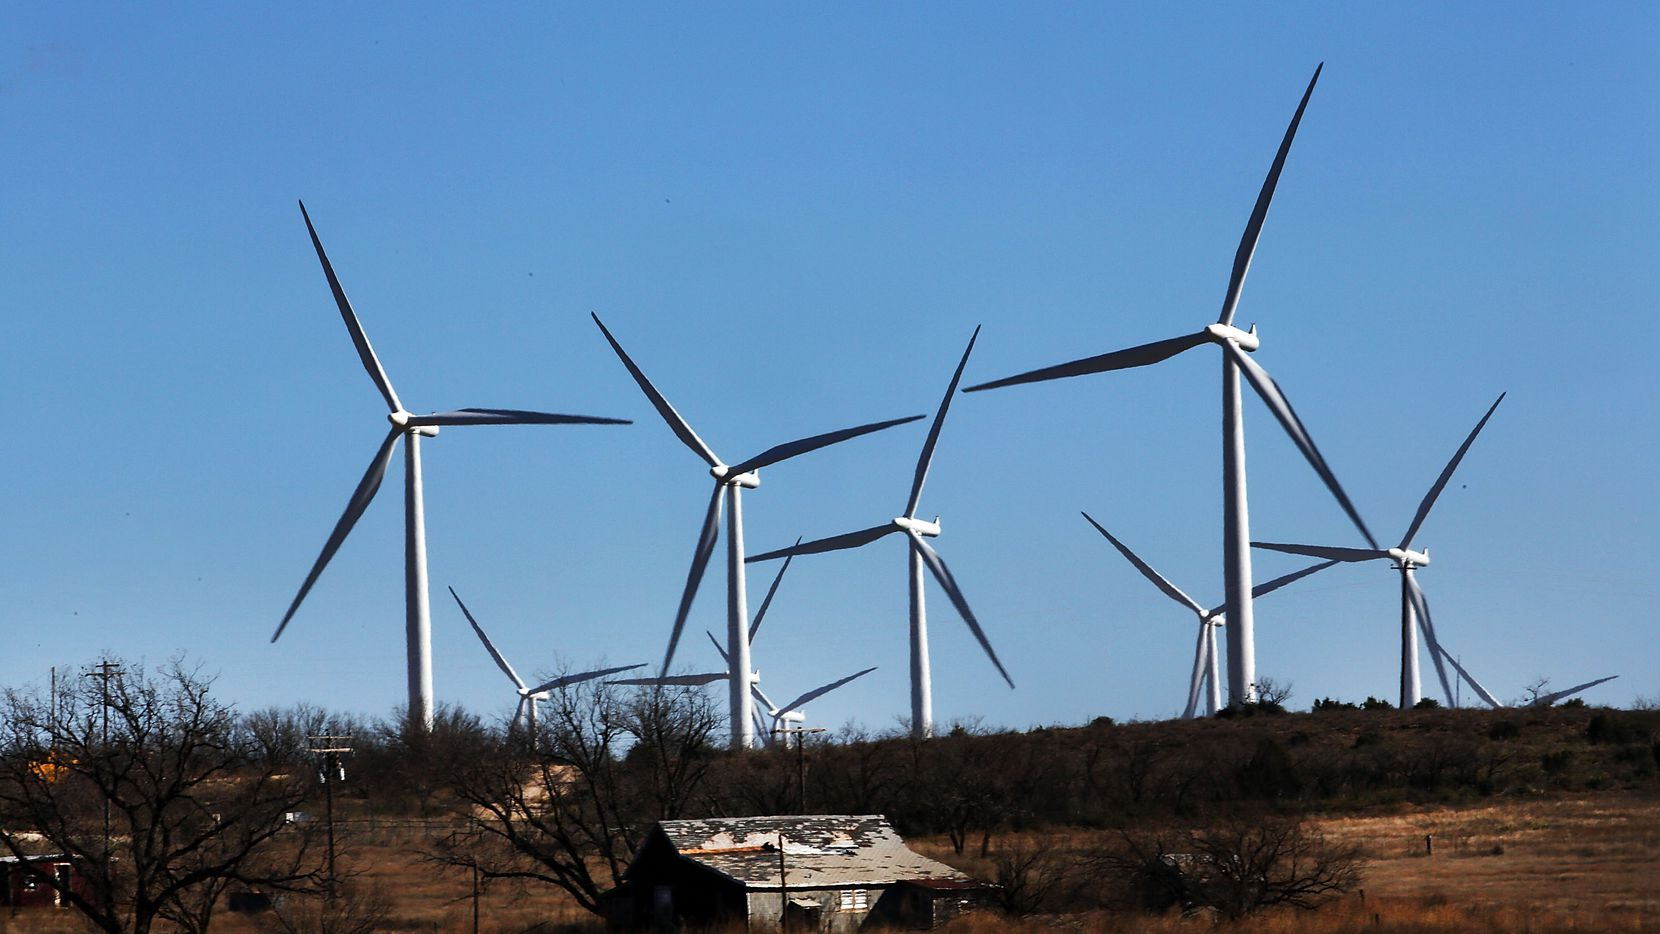 Wind turbines like these in Colorado City, Texas, provided 15 percent of the power on the ERCOT grid last year.